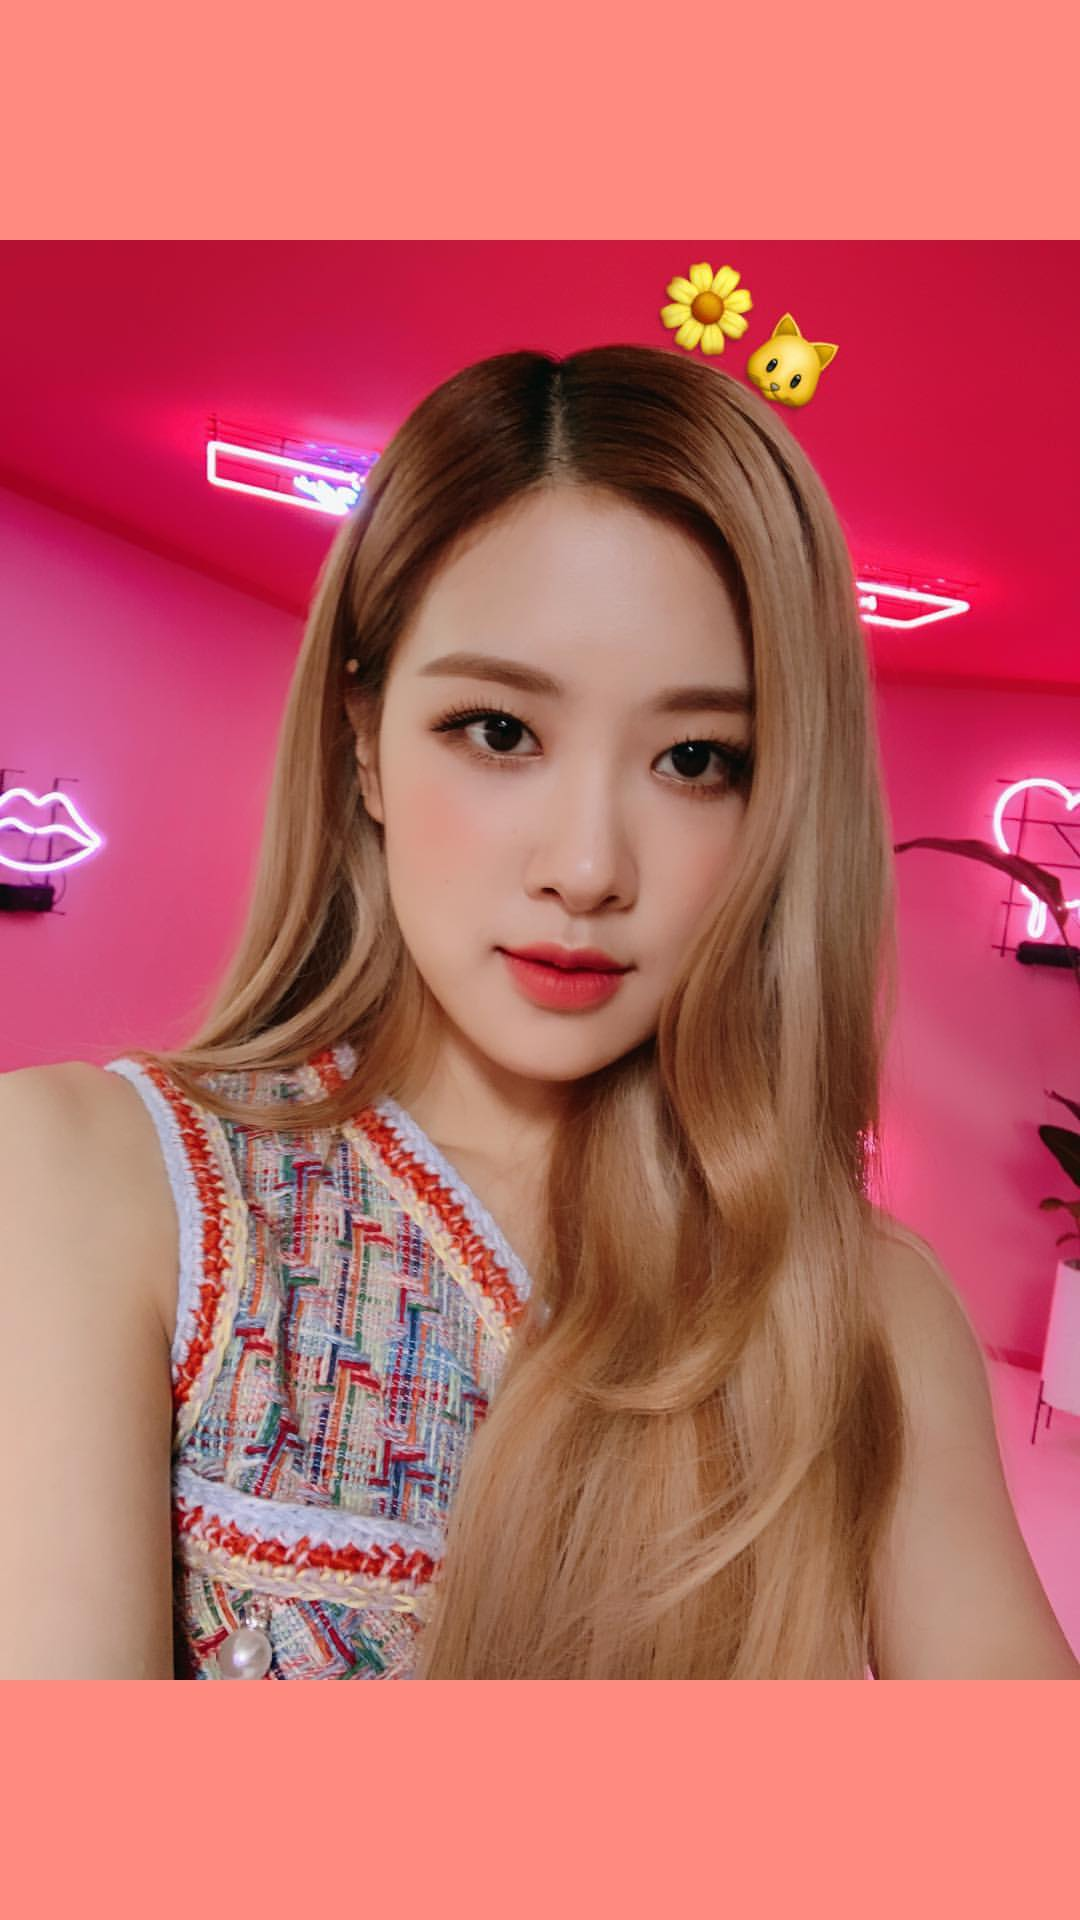 Who is the most underrated BlackPink member? - Quora